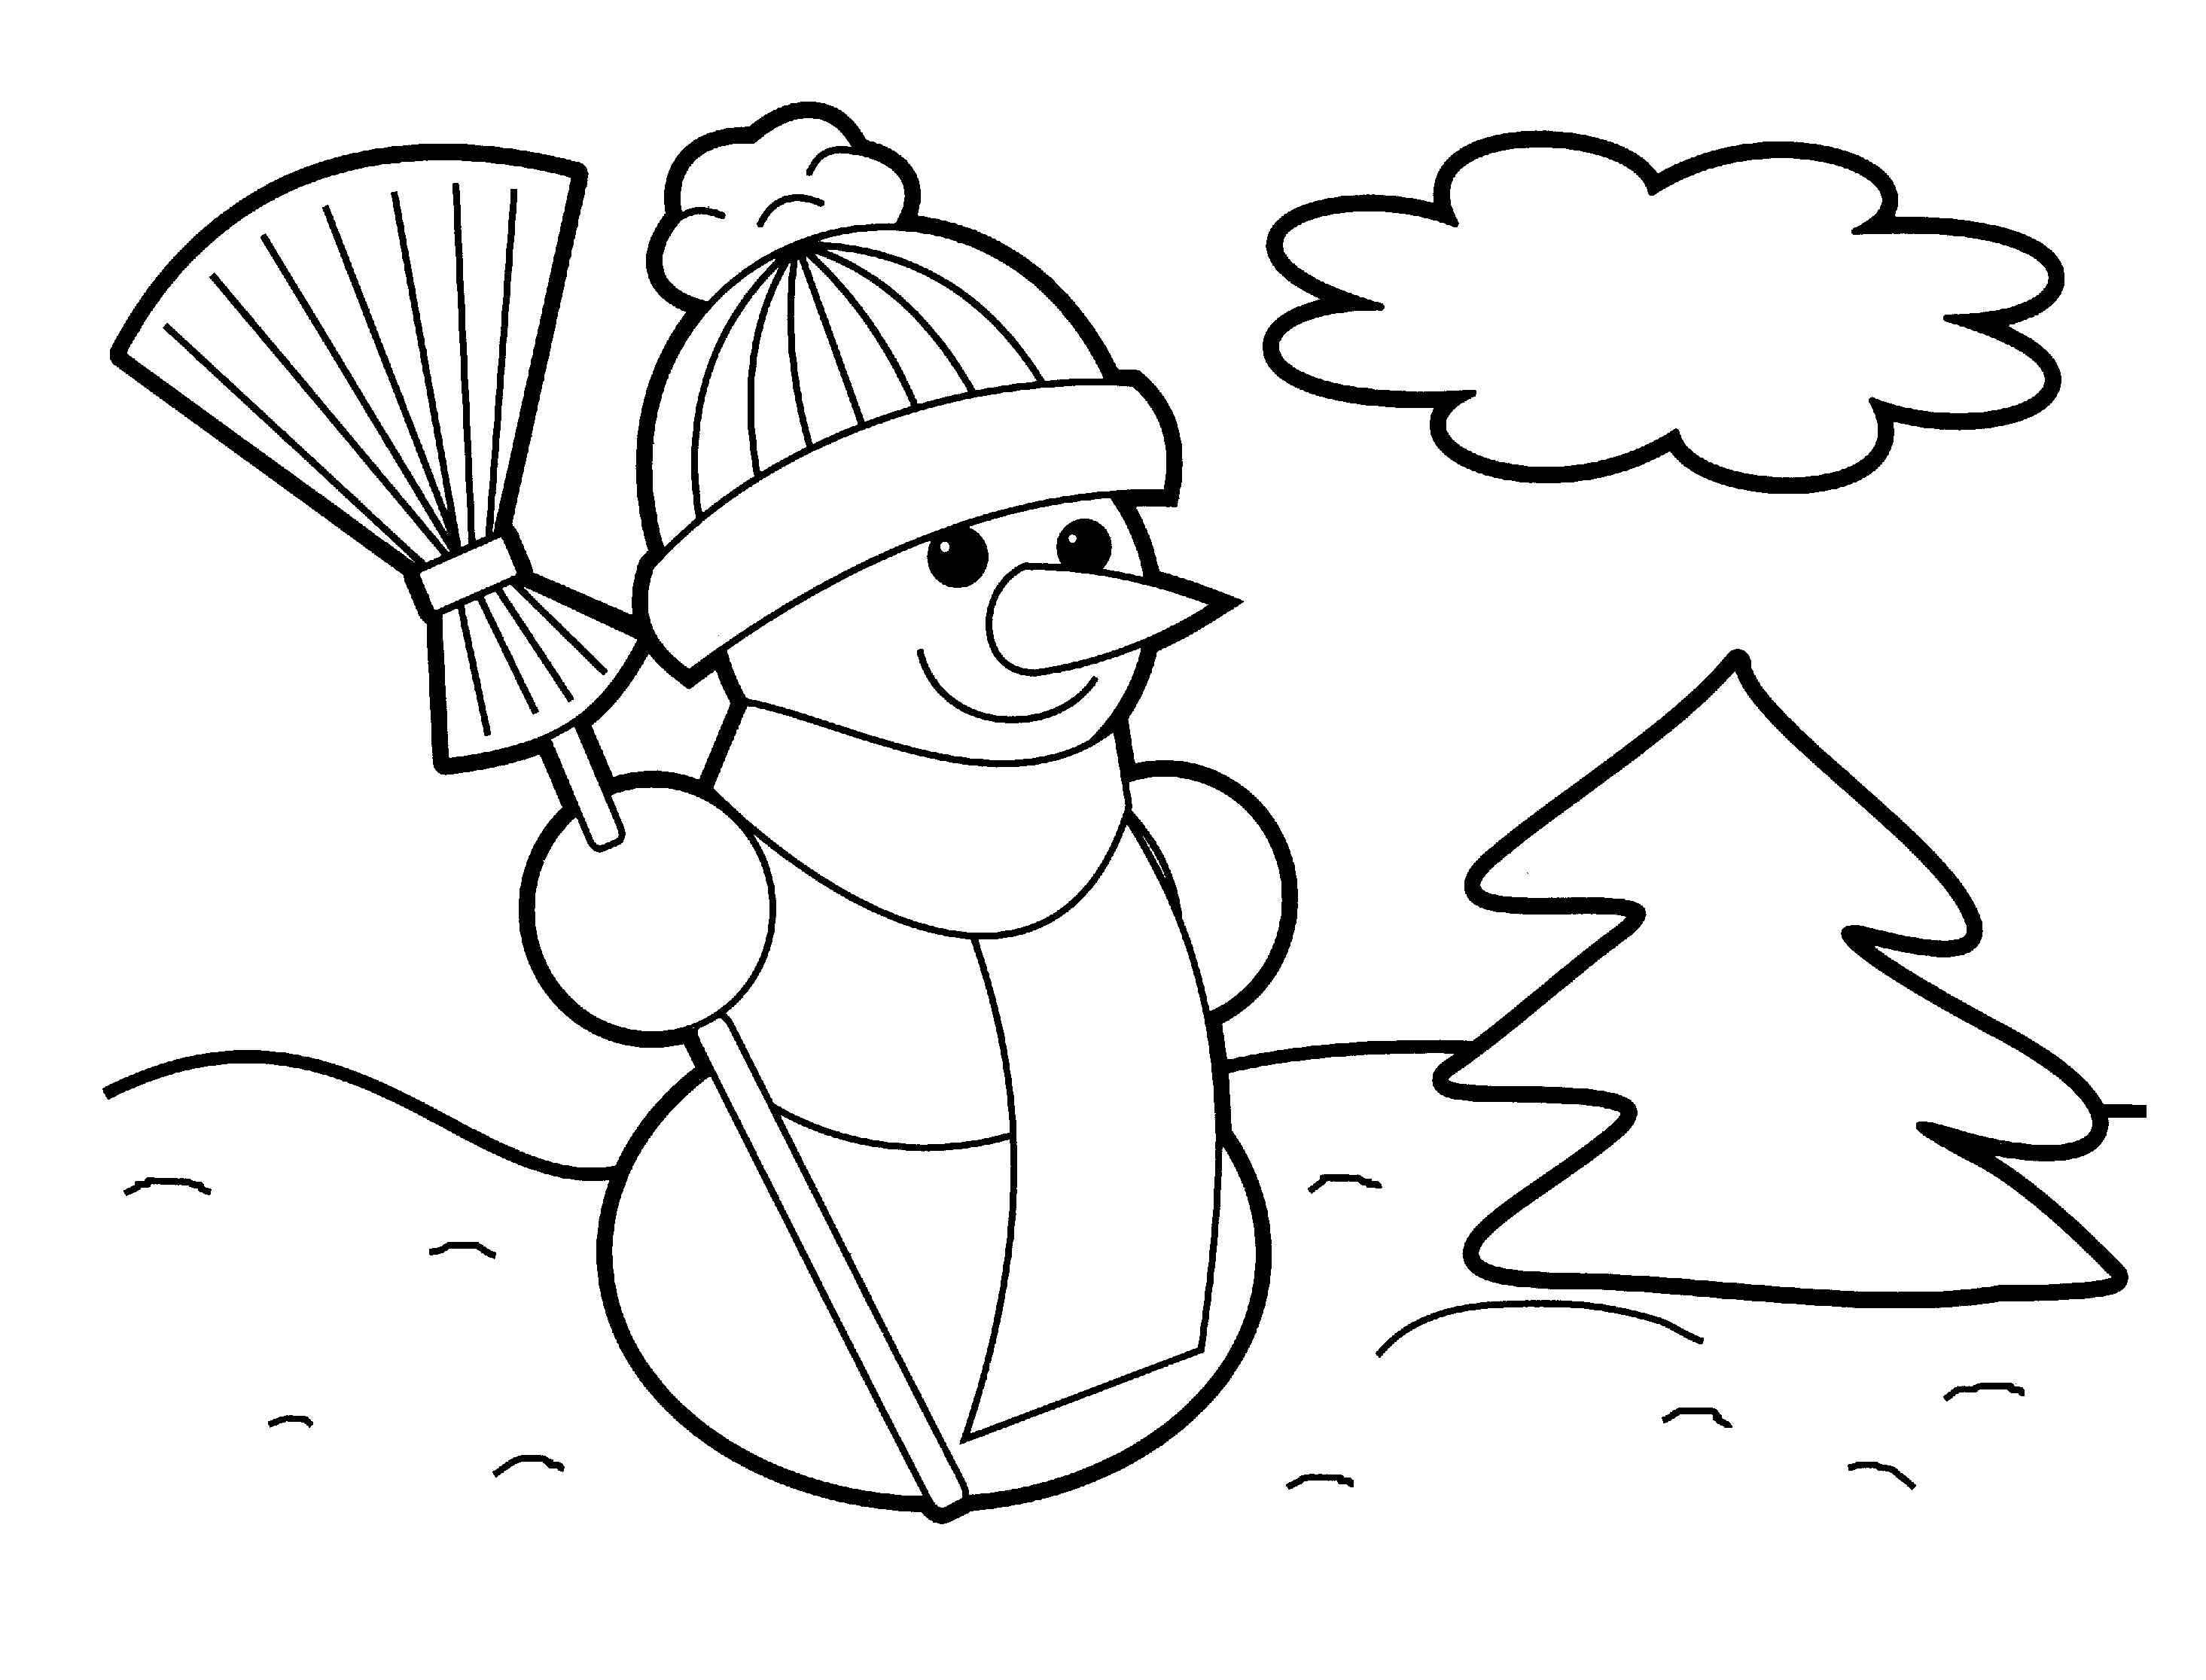 Cute Christmas Coloring Pages Cool Printable Christmas Coloring Pages Crafts Pinterest Free